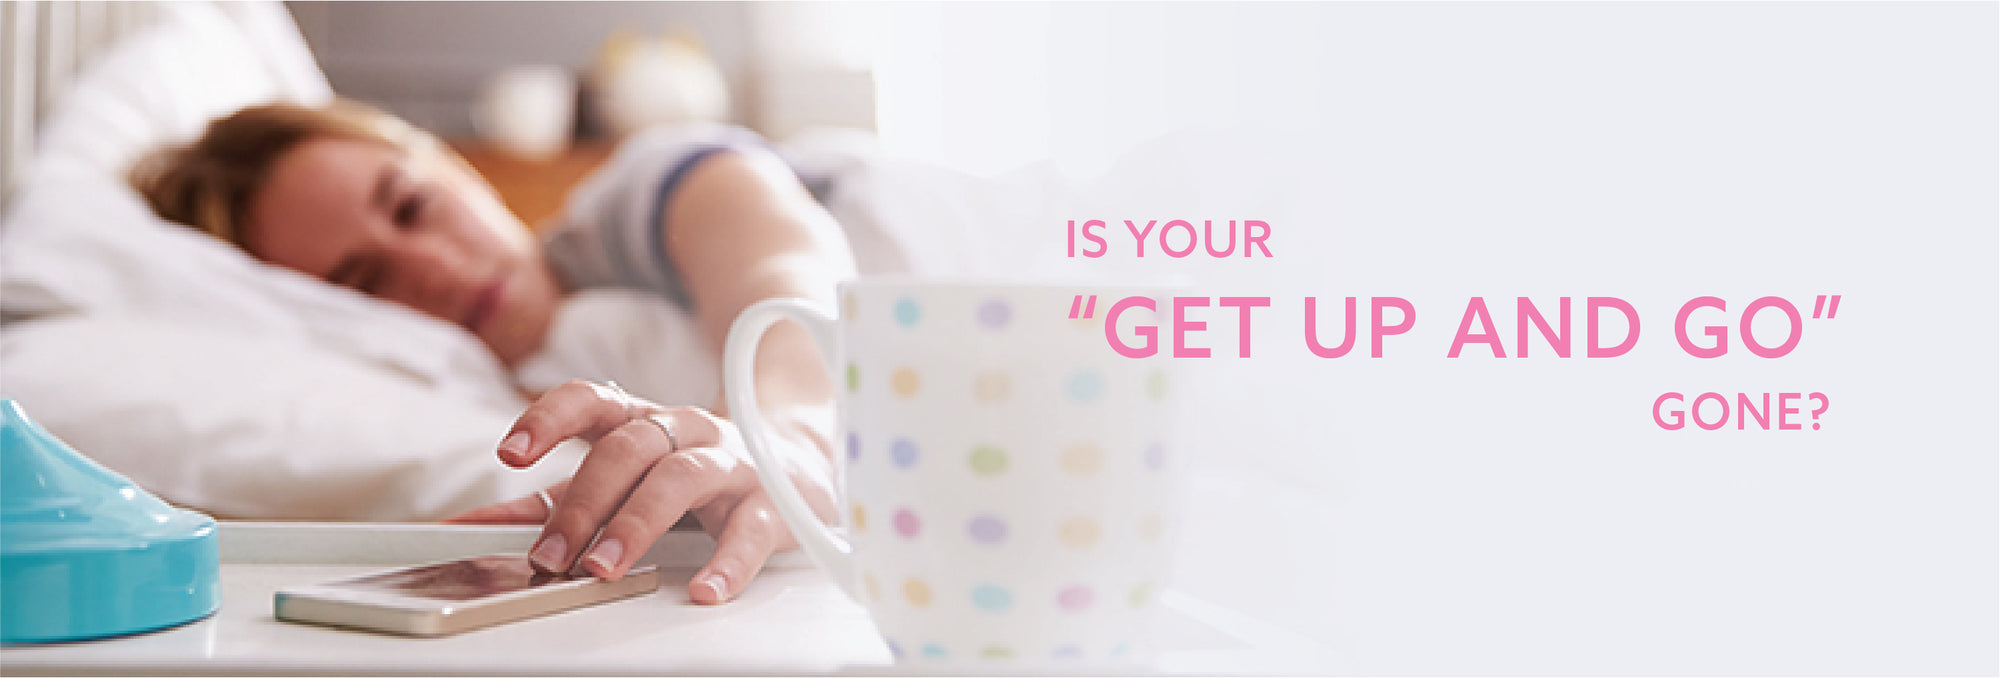 "IS YOUR ""GET UP AND GO"" GONE?"